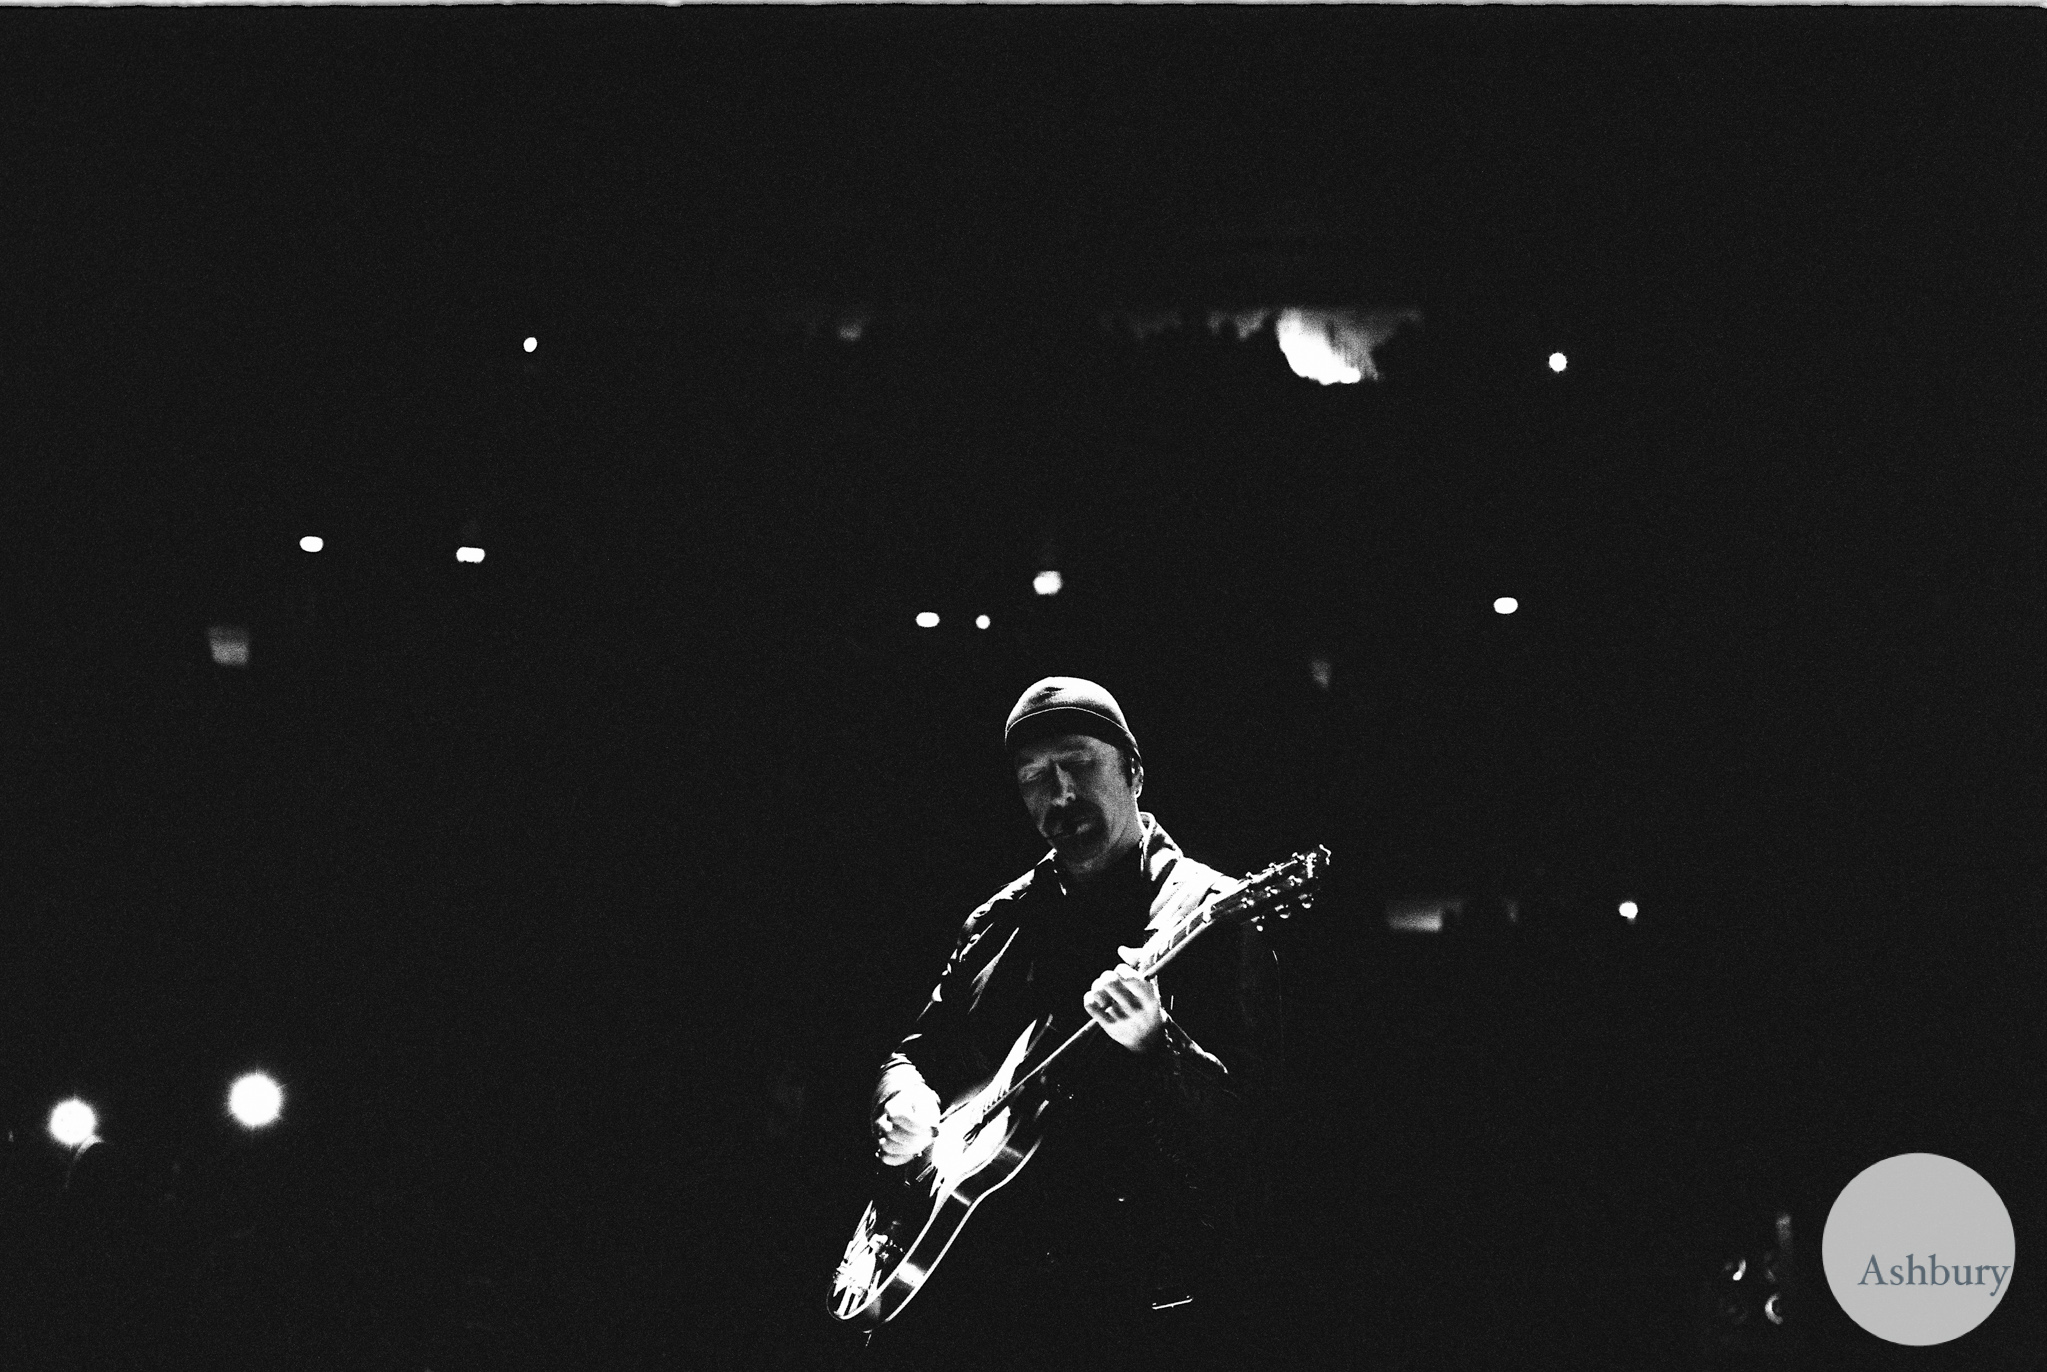 the edge of U2 u2ie tour MSG 07/19 kodak portra 400 @ 1600